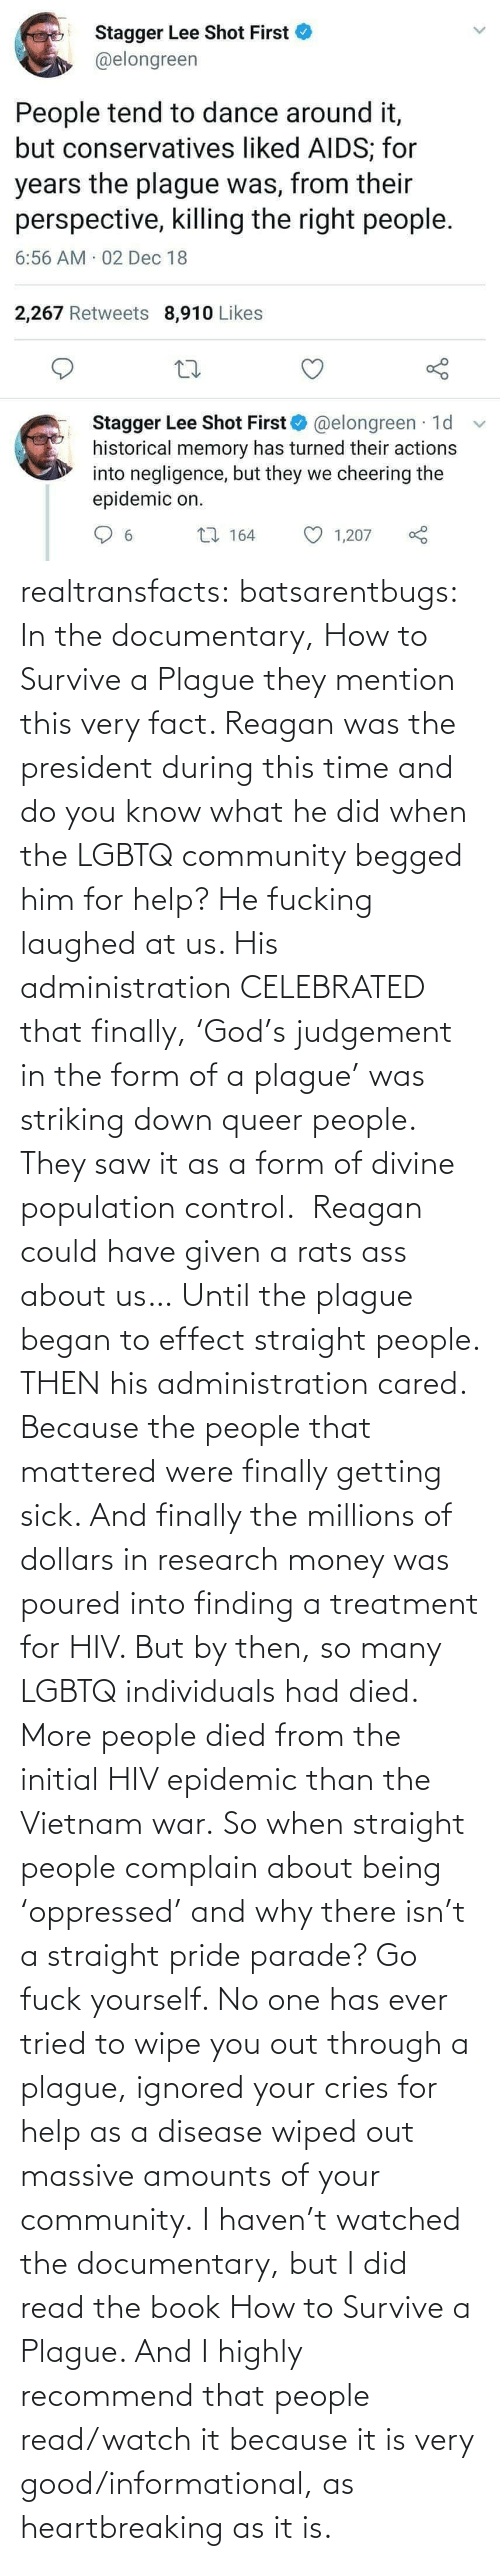 wipe: Stagger Lee Shot First  @elongreen  People tend to dance around it,  but conservatives liked AIDS; for  years the plague was, from their  perspective, killing the right people.  6:56 AM 02 Dec 18  2,267 Retweets 8,910 Likes  Stagger Lee Shot First O @elongreen · 1d  historical memory has turned their actions  into negligence, but they we cheering the  epidemic on.  27 164  1,207  6. realtransfacts:  batsarentbugs:  In the documentary, How to Survive a Plague they mention this very fact. Reagan was the president during this time and do you know what he did when the LGBTQ community begged him for help? He fucking laughed at us. His administration CELEBRATED that finally, 'God's judgement in the form of a plague' was striking down queer people.  They saw it as a form of divine population control.  Reagan could have given a rats ass about us… Until the plague began to effect straight people. THEN his administration cared. Because the people that mattered were finally getting sick. And finally the millions of dollars in research money was poured into finding a treatment for HIV. But by then, so many LGBTQ individuals had died.  More people died from the initial HIV epidemic than the Vietnam war. So when straight people complain about being 'oppressed' and why there isn't a straight pride parade? Go fuck yourself. No one has ever tried to wipe you out through a plague, ignored your cries for help as a disease wiped out massive amounts of your community.  I haven't watched the documentary, but I did read the book  How to Survive a Plague. And I highly recommend that people read/watch it because it is very good/informational, as heartbreaking as it is.